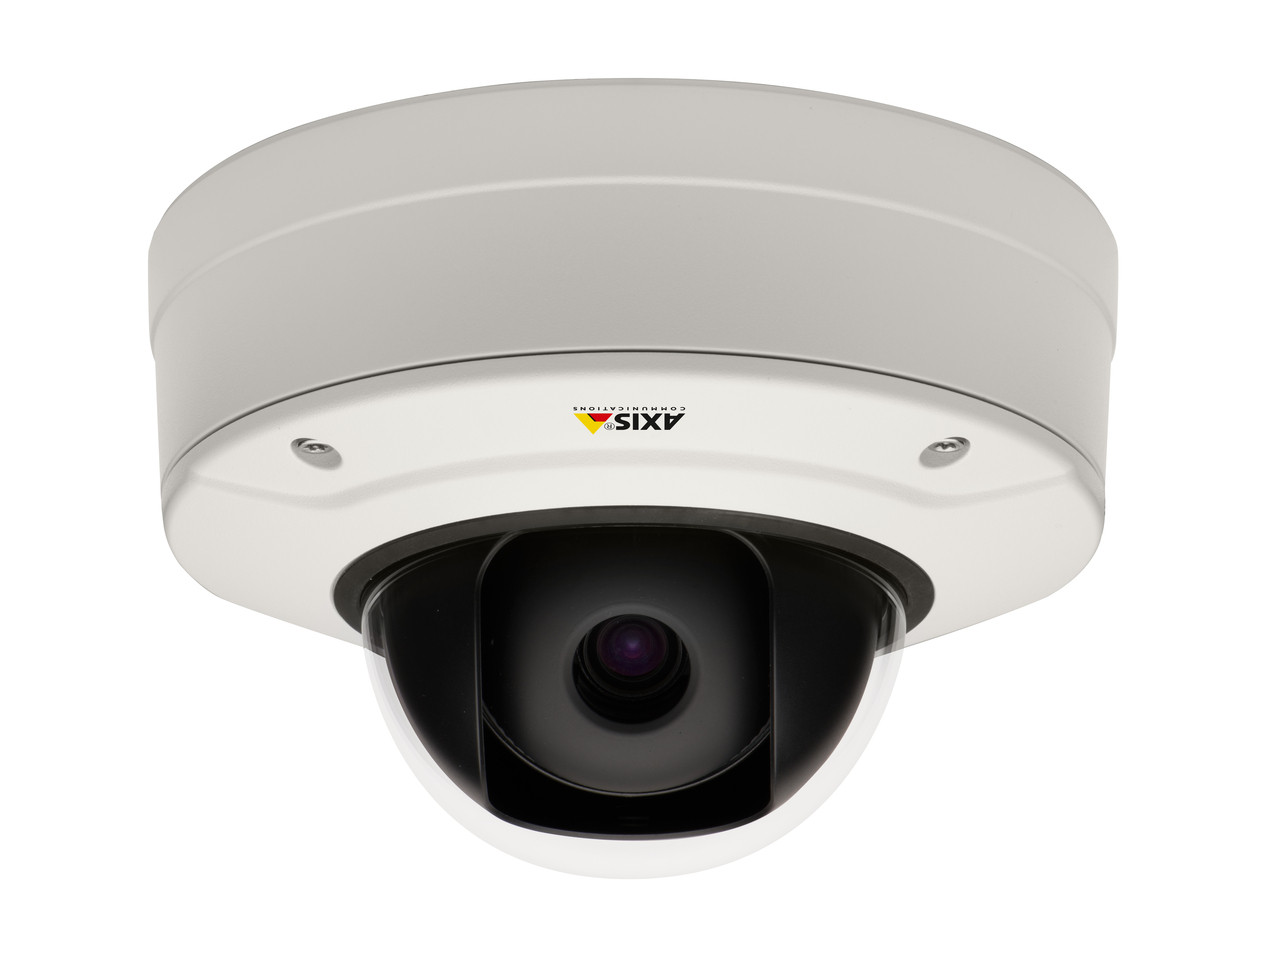 AXIS P3365-VE Network Camera Drivers (2019)